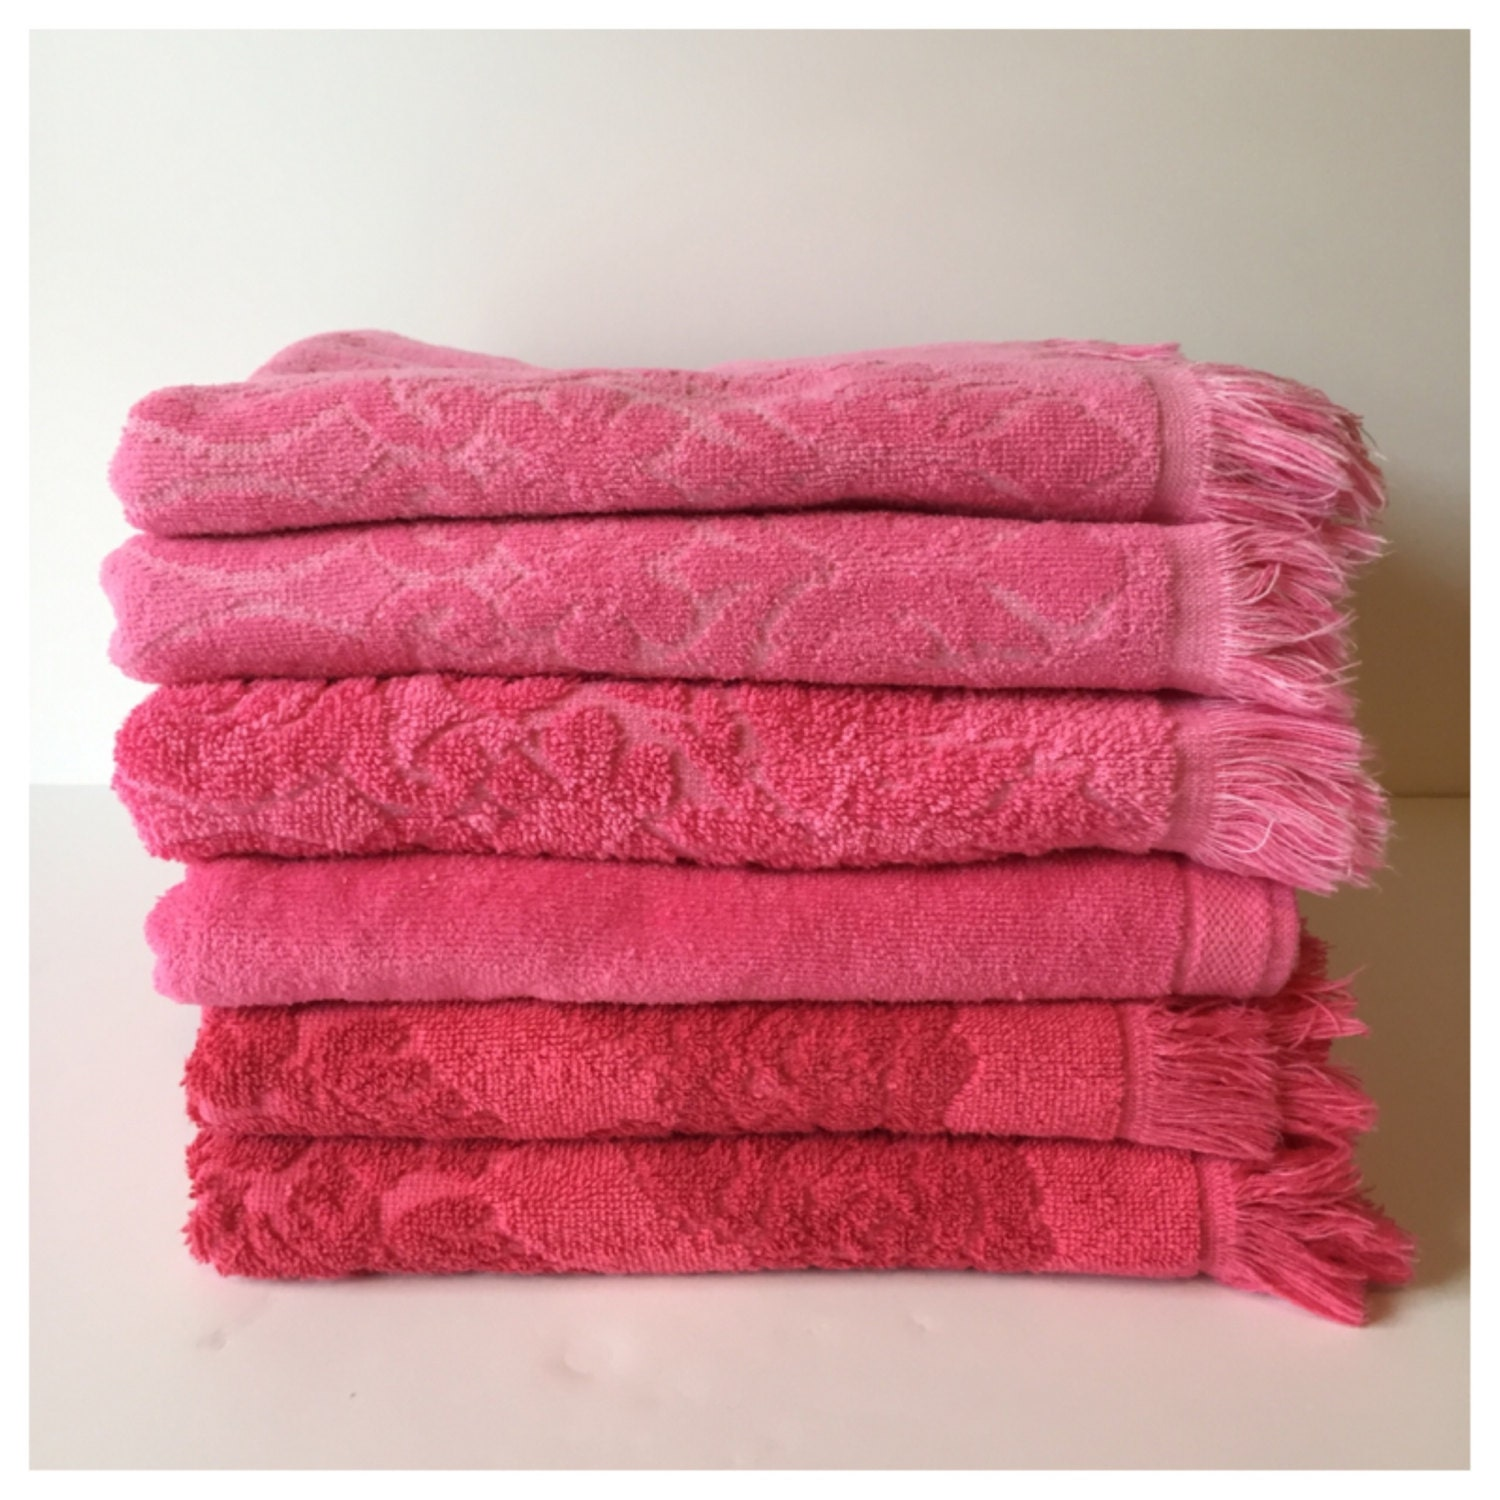 Reproduction Vintage Bath Towels: Vintage Bath Towels Six Raspberyy Towels Pink By